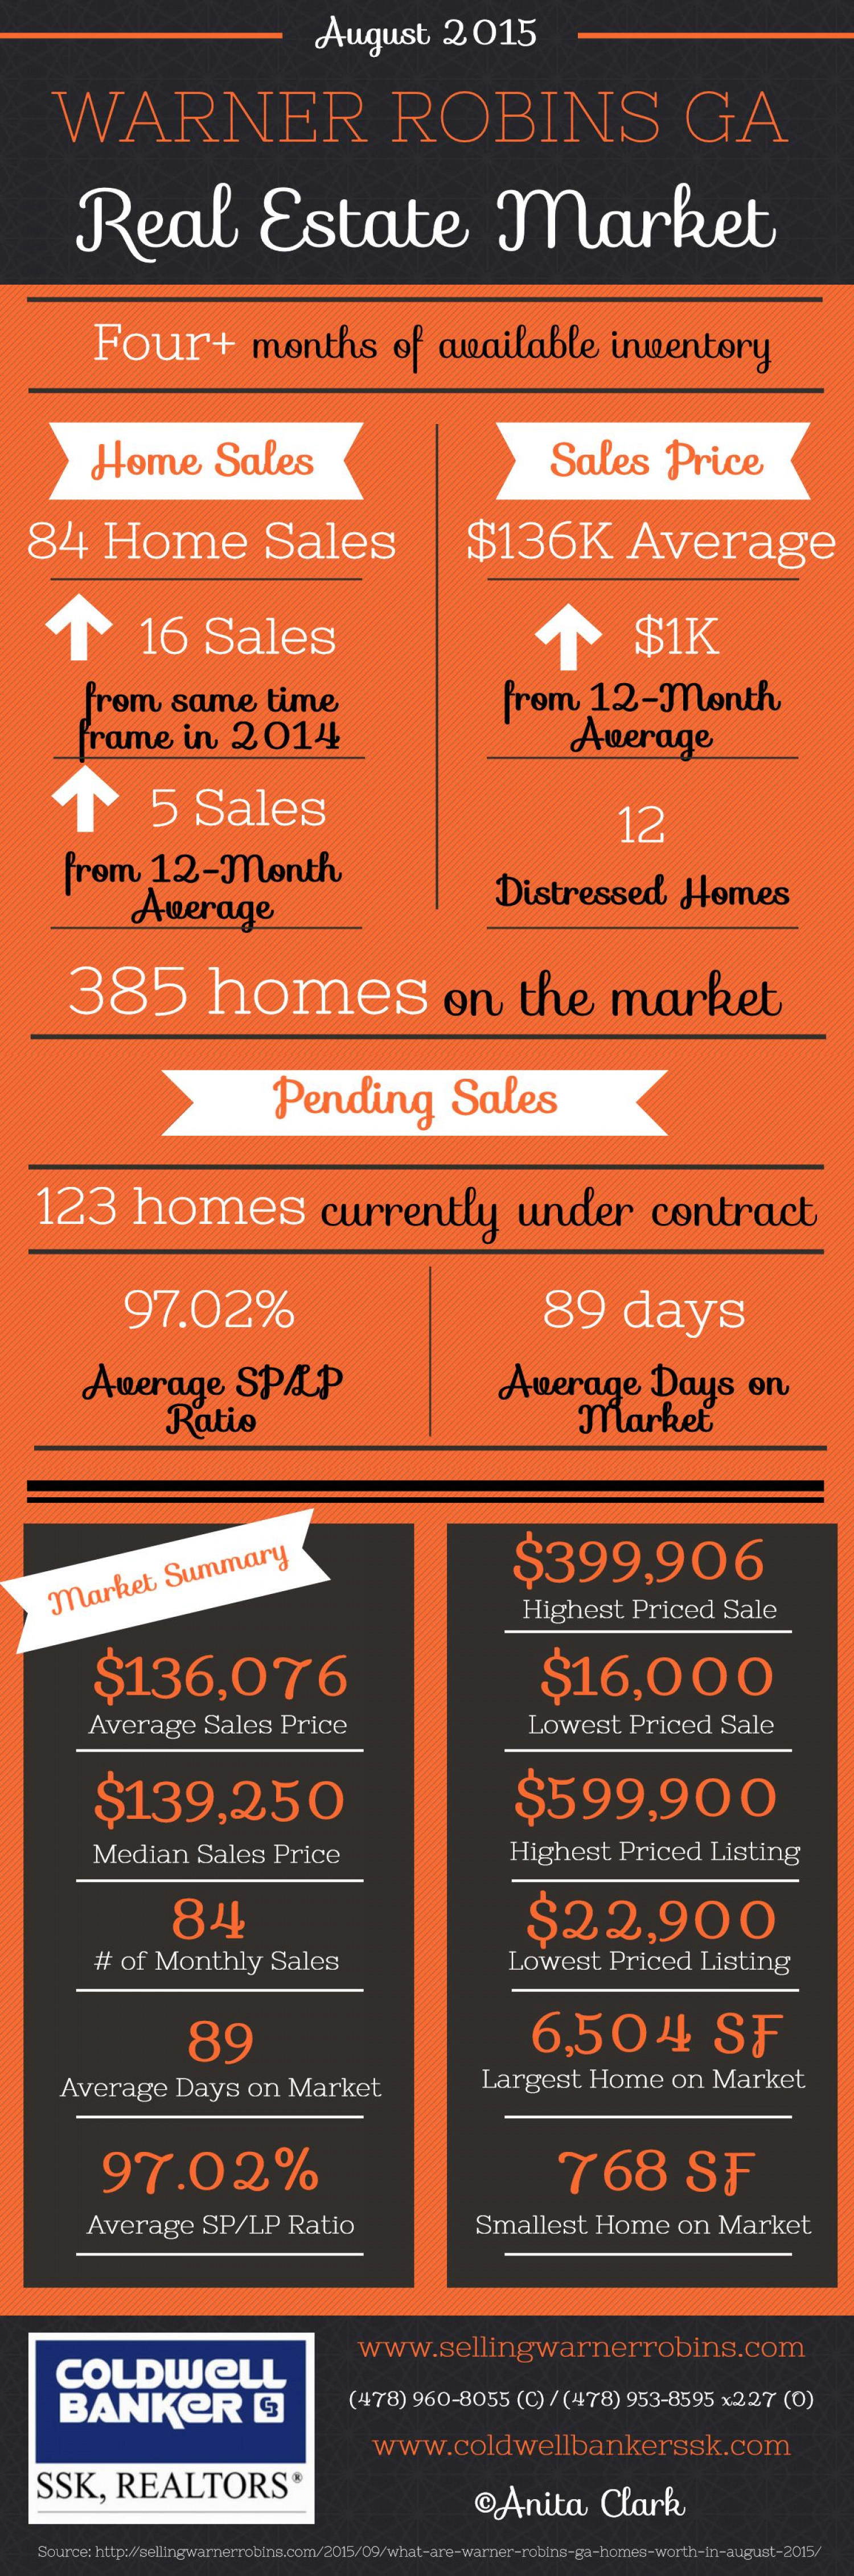 Warner Robins GA Real Estate Market in August 2015 Infographic